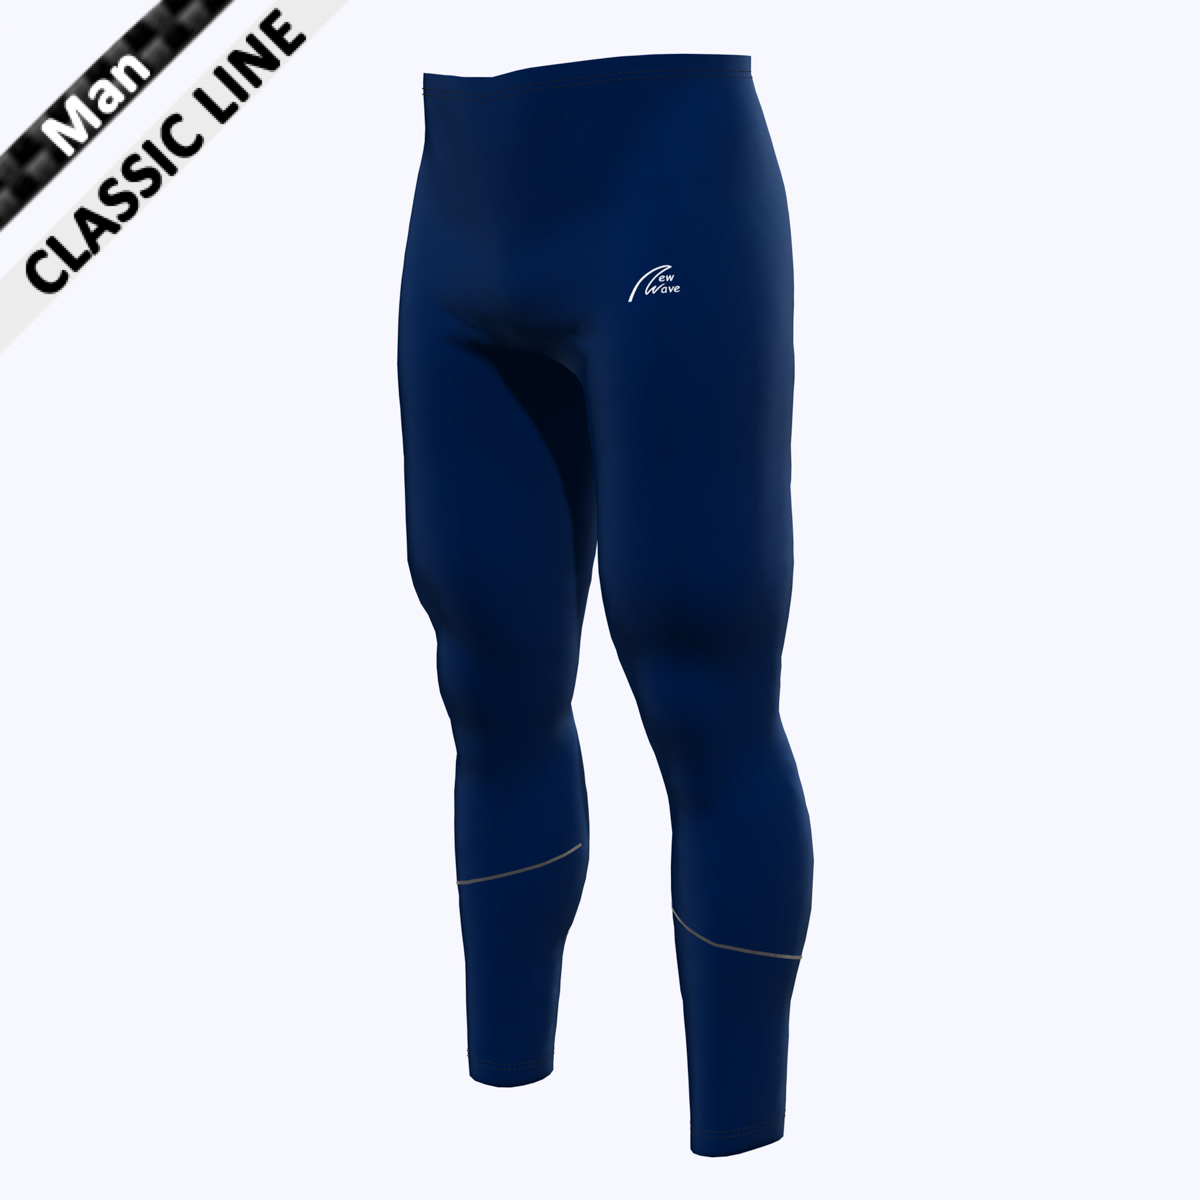 Uni Reflex Man - Tight marine blau